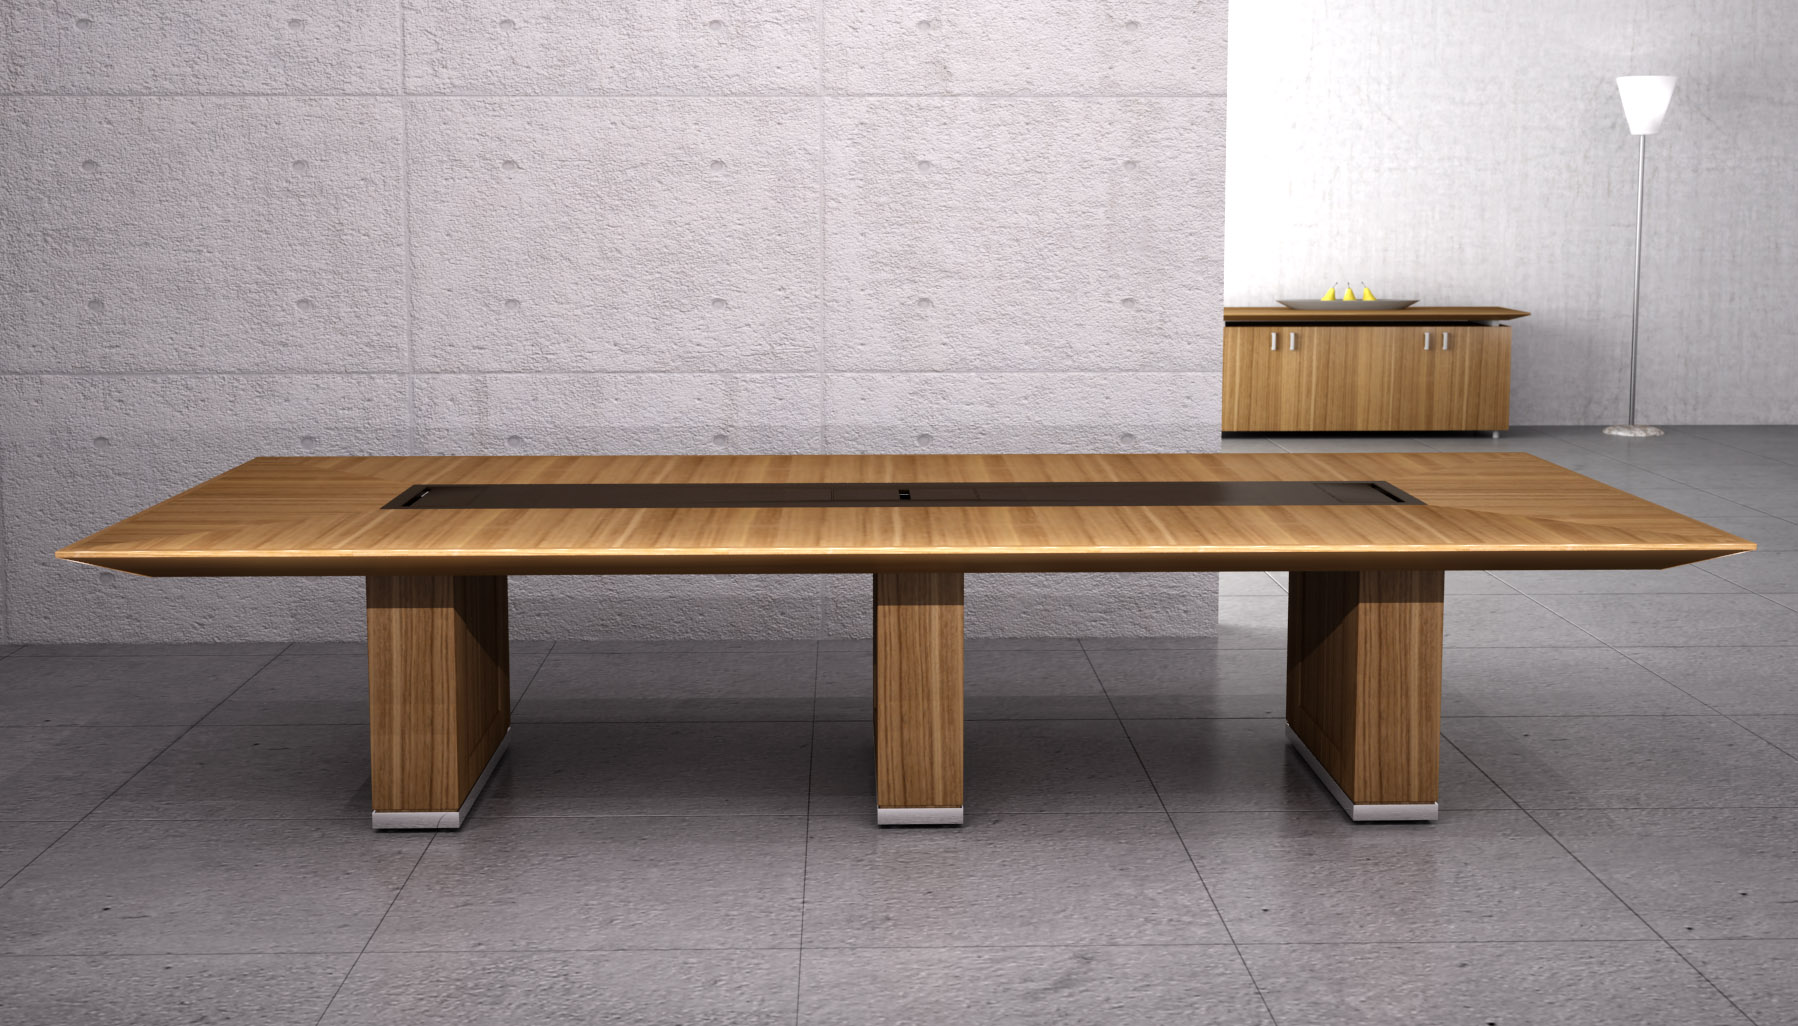 Various Awesome Conference Table Design : Cool Bench Style Low Profile Modern Wooden Conference Table Design Ideas